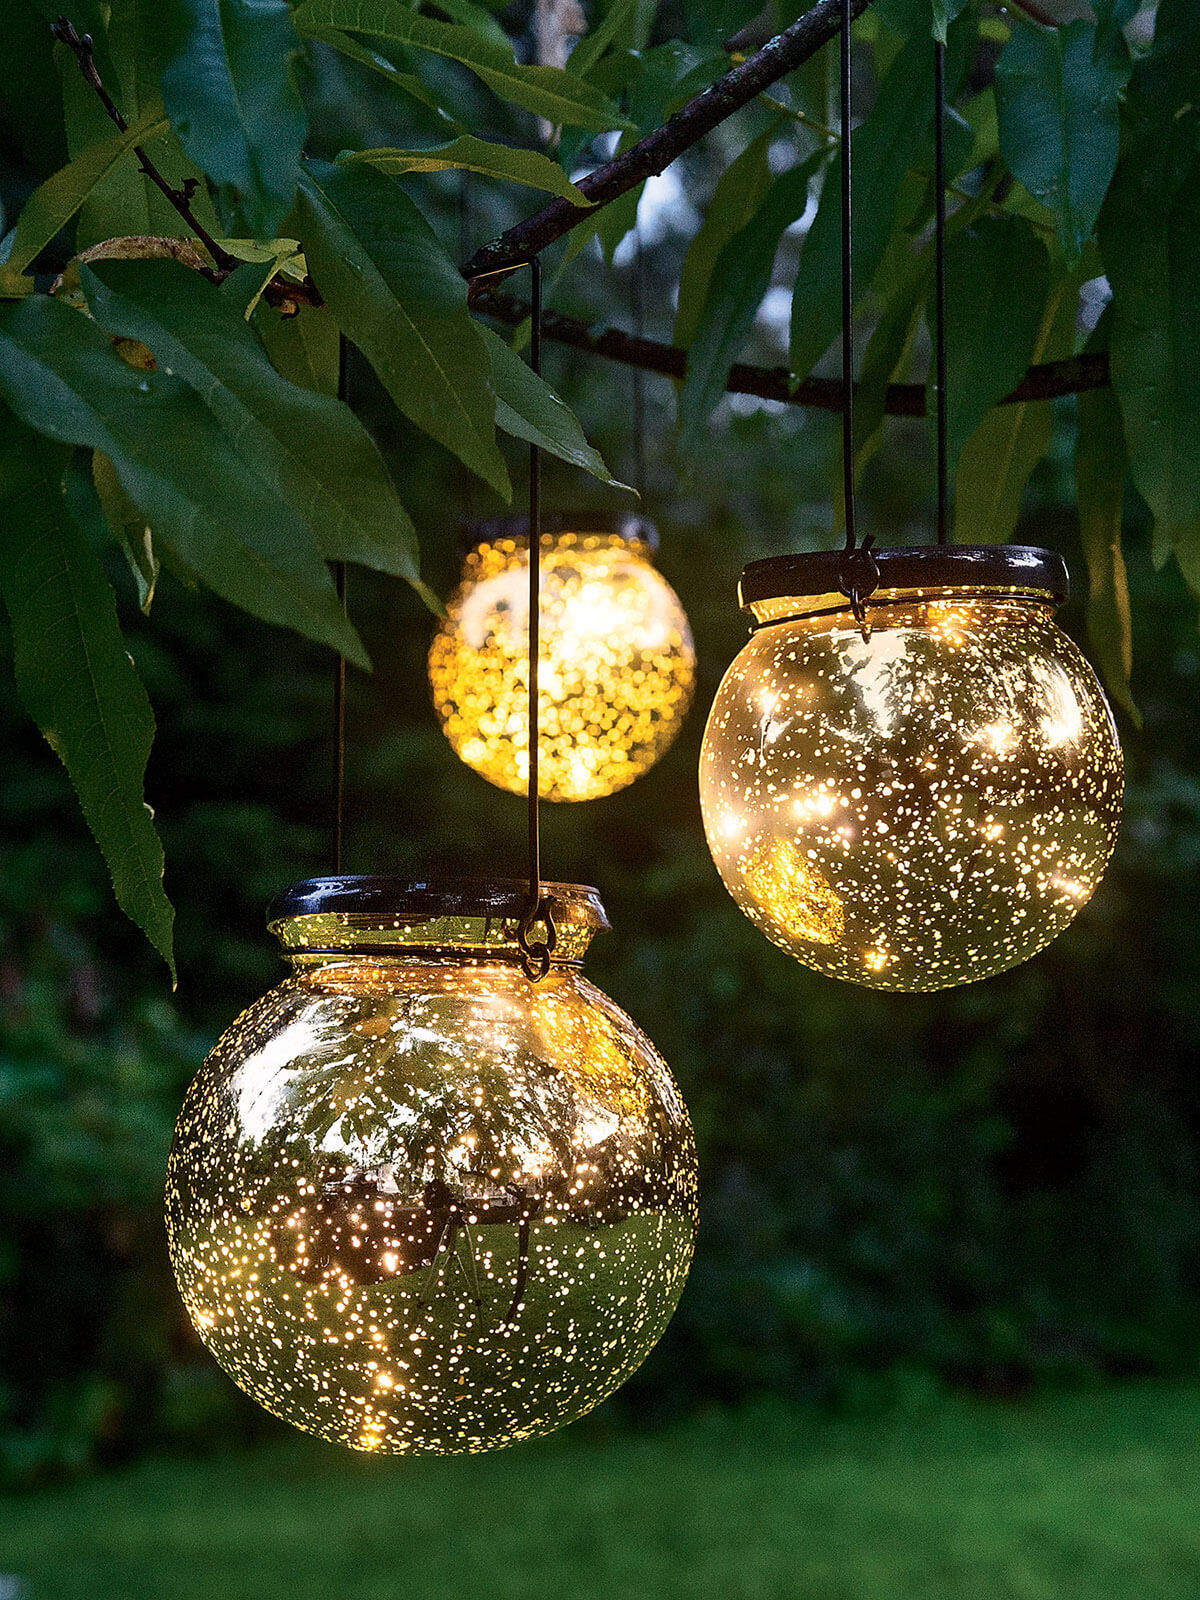 40 Best Backyard Lighting Ideas And Designs For 2021